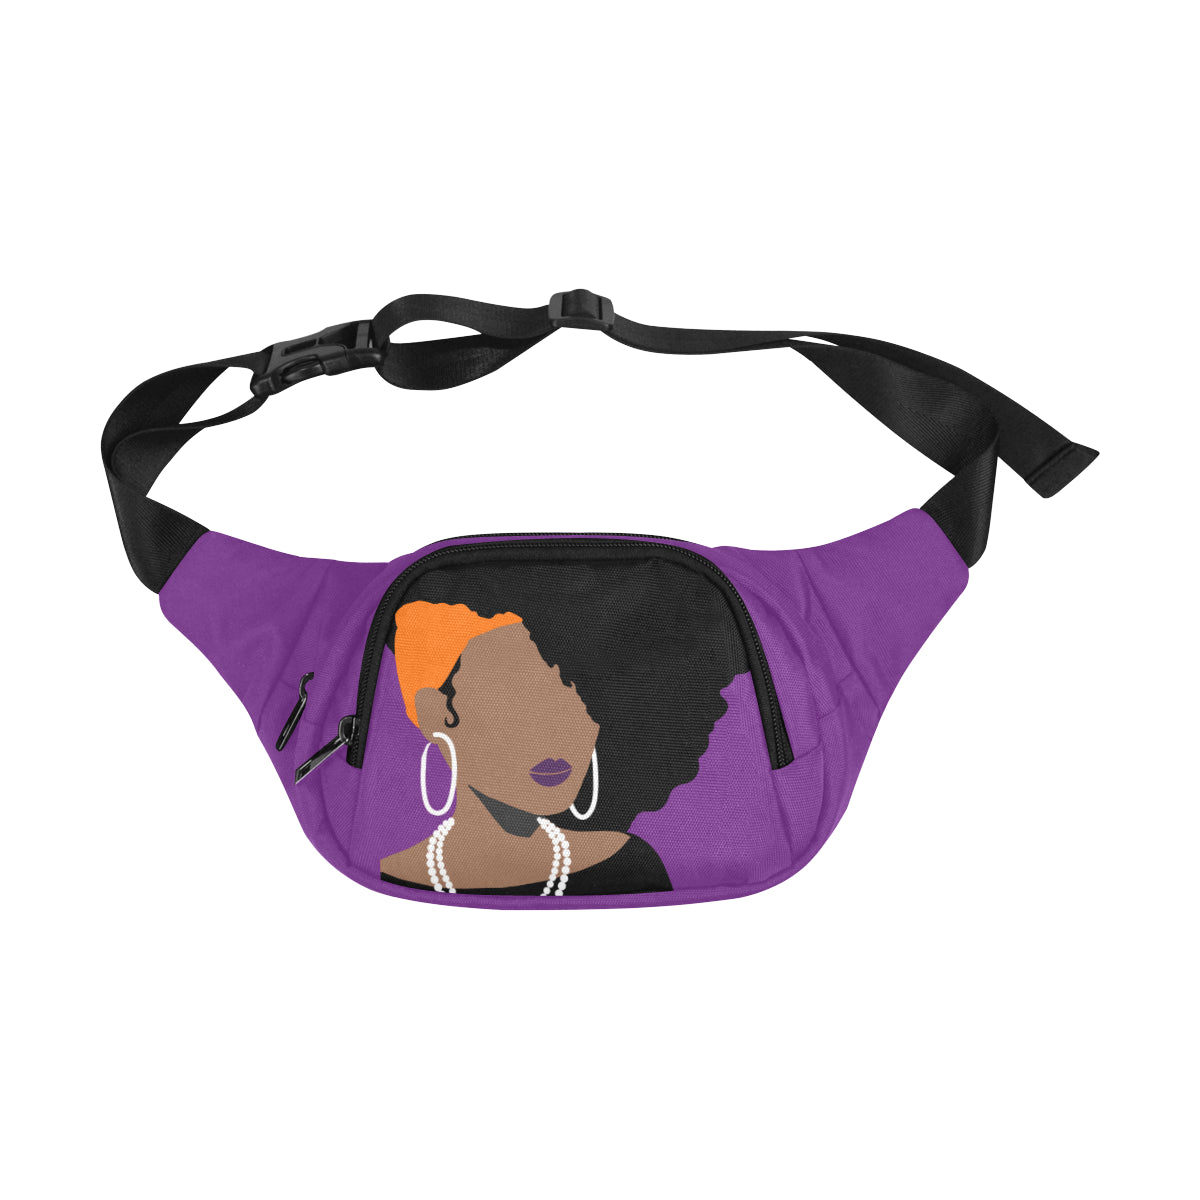 Bougie - Ronda 1866 Fanny Pack